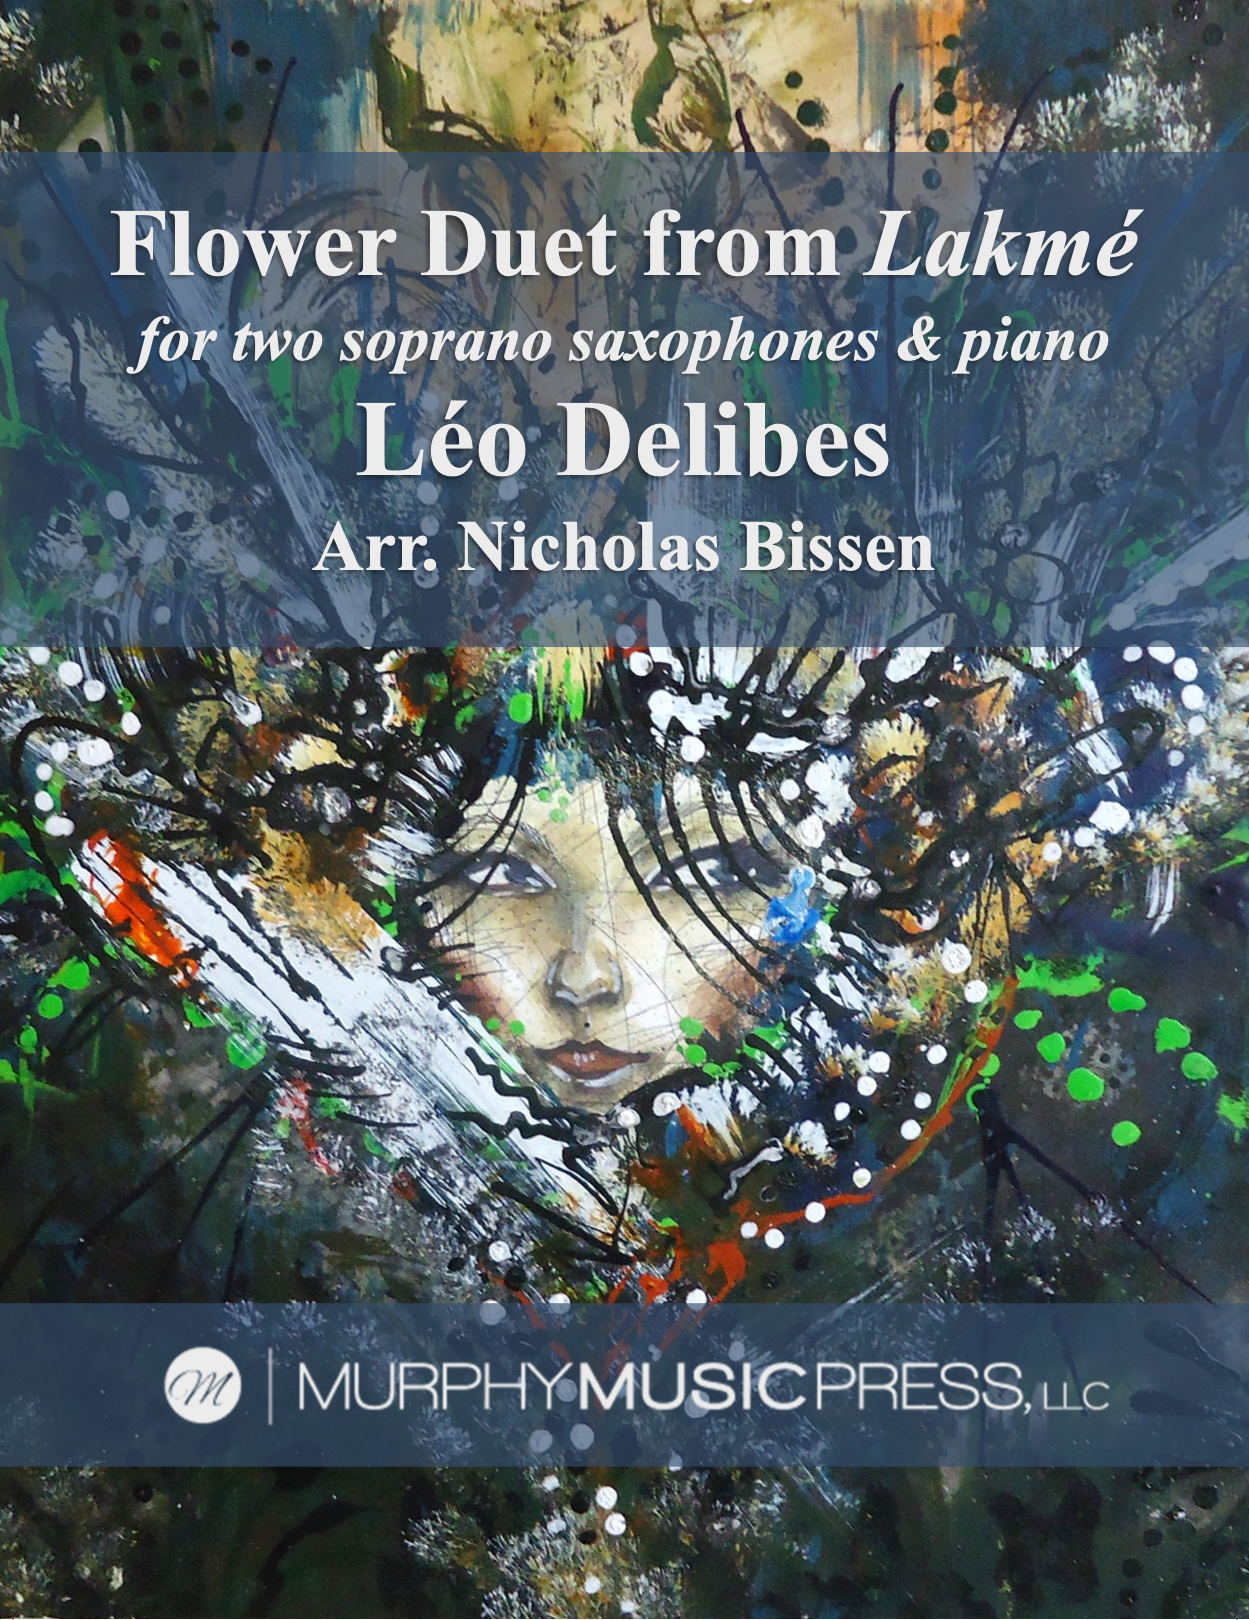 The Flower Duet by arr. Nicholas Bissen